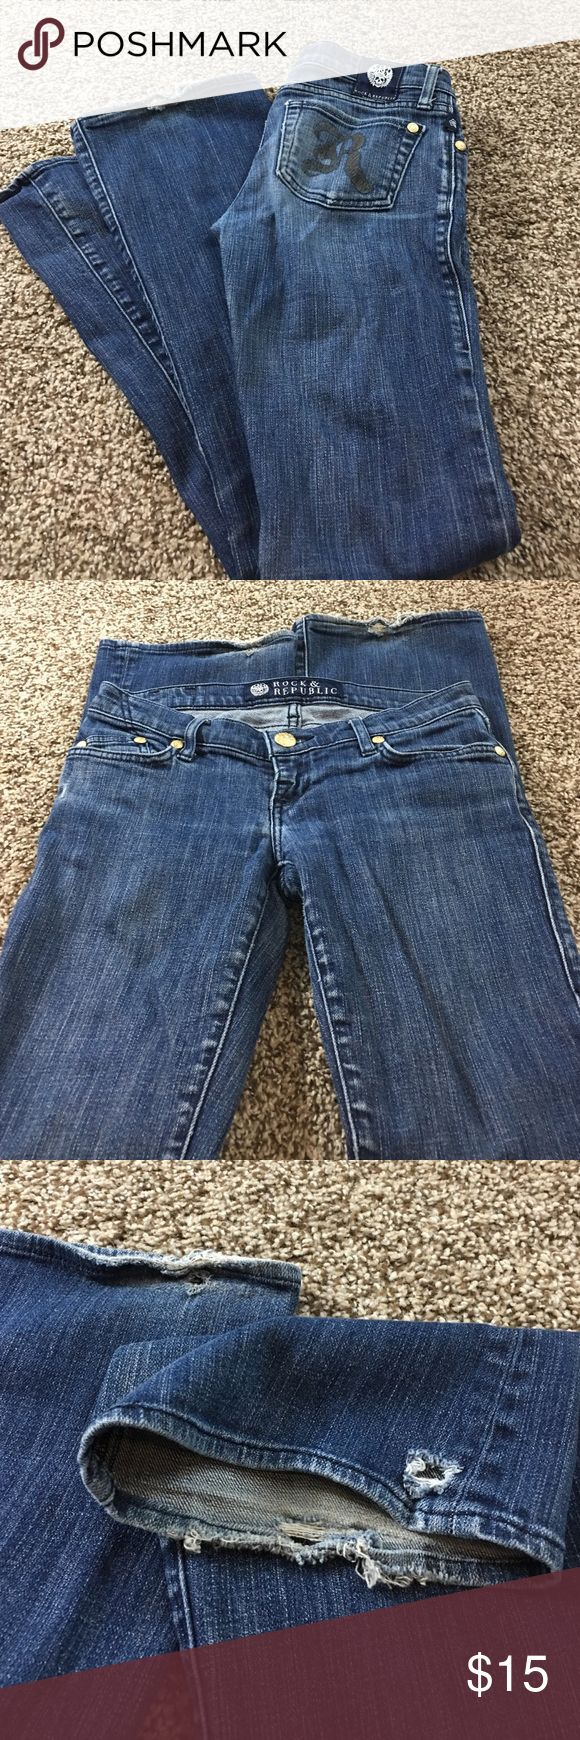 """Rock & Republic Jeans Some flaws at hem--see picture. Cut#001497. Inseam 30"""". Rock & Republic Jeans"""